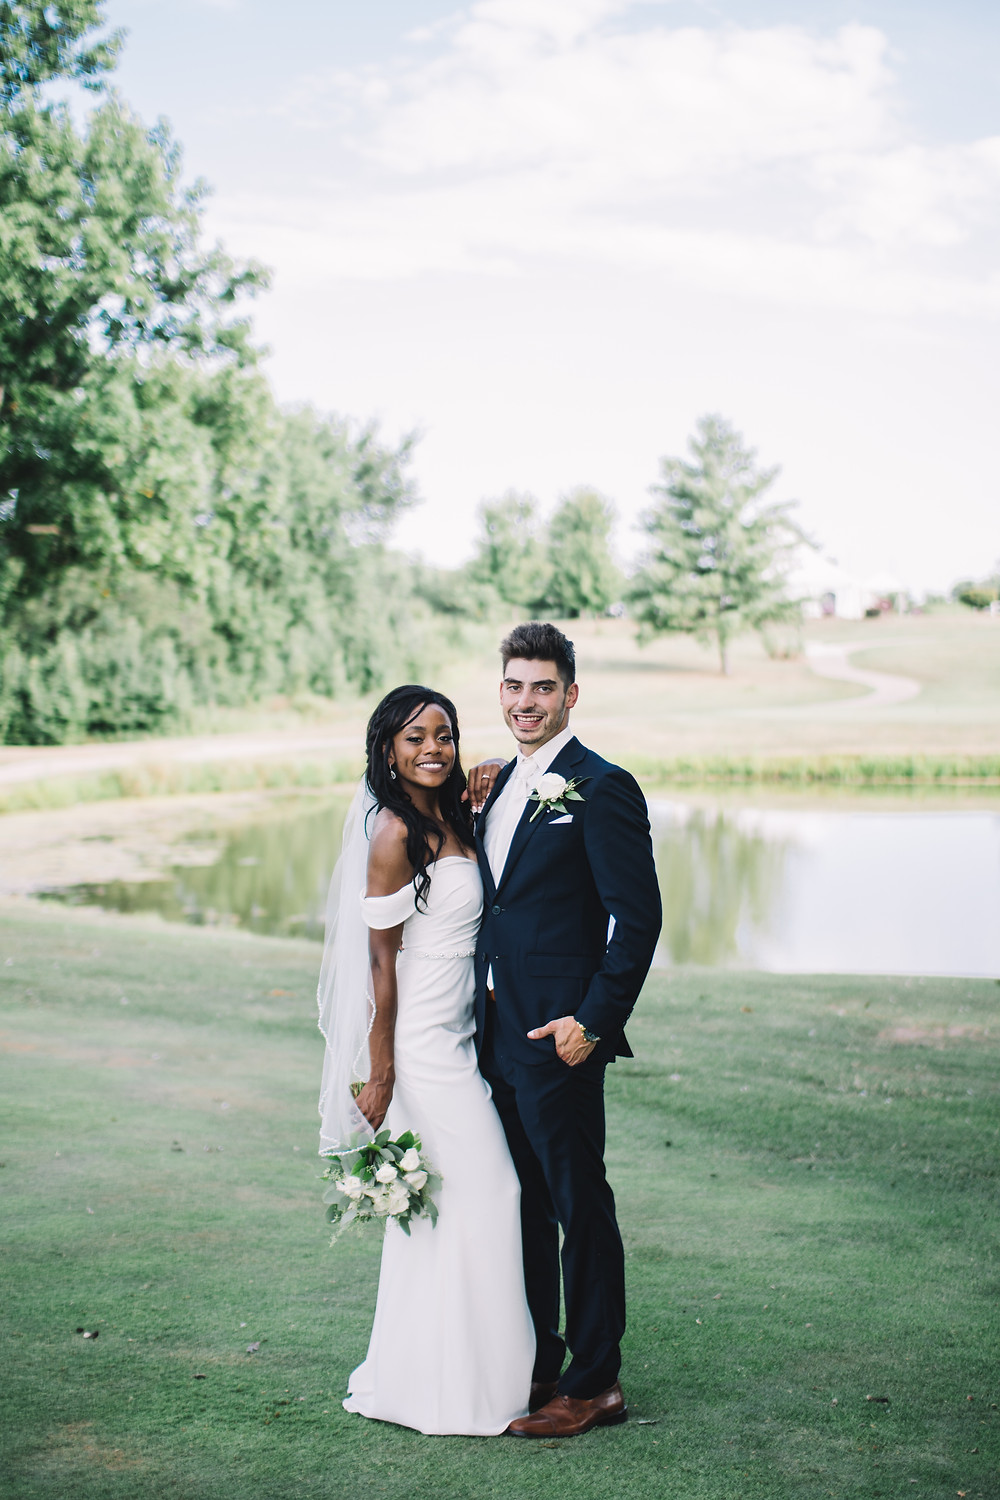 Springfield, IL, Illinois, Pipe Glen, Golf Club, Course, Wedding Venue, Outdoor Wedding, Central Illinois, Chatham, Bride, Groom, Young Love, Off Shoulder Dress, Gown, Interracial Couple, Haitian, College Sweethearts